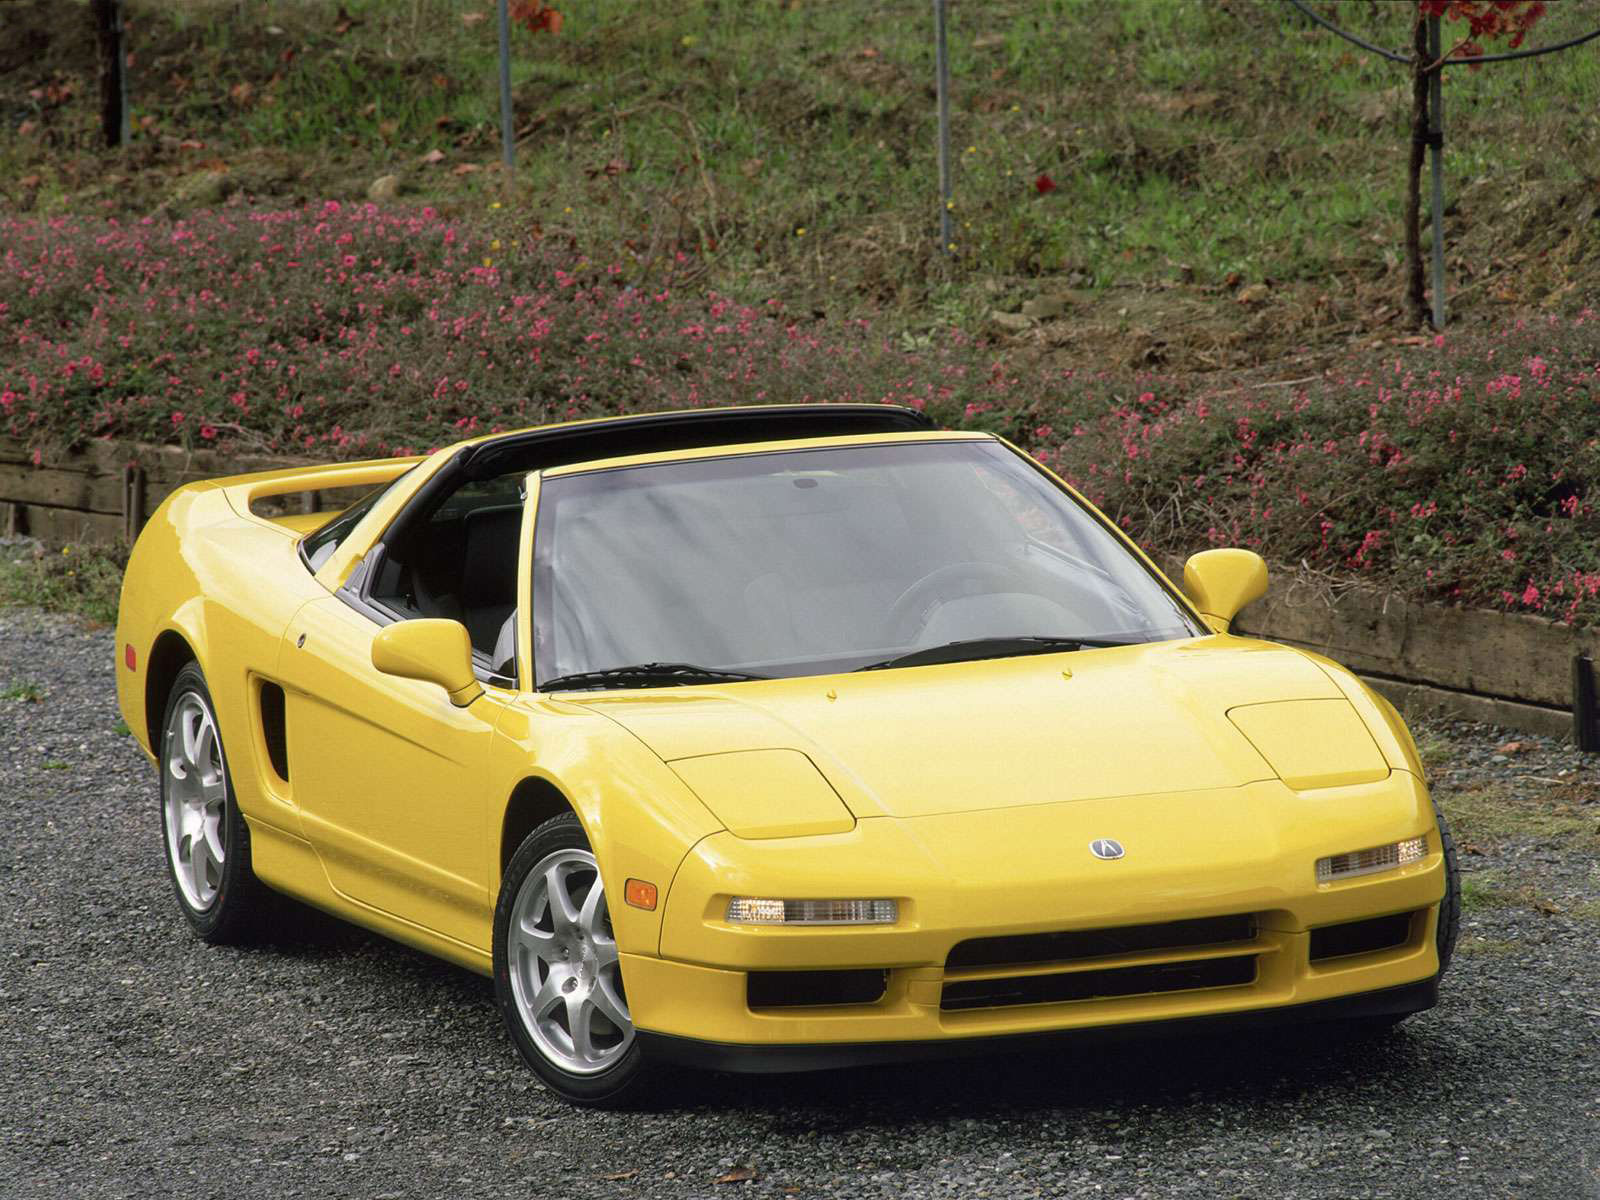 Acura Exotic Car >> 2001 ACURA NSX-T car photos, pictures, wallpapers